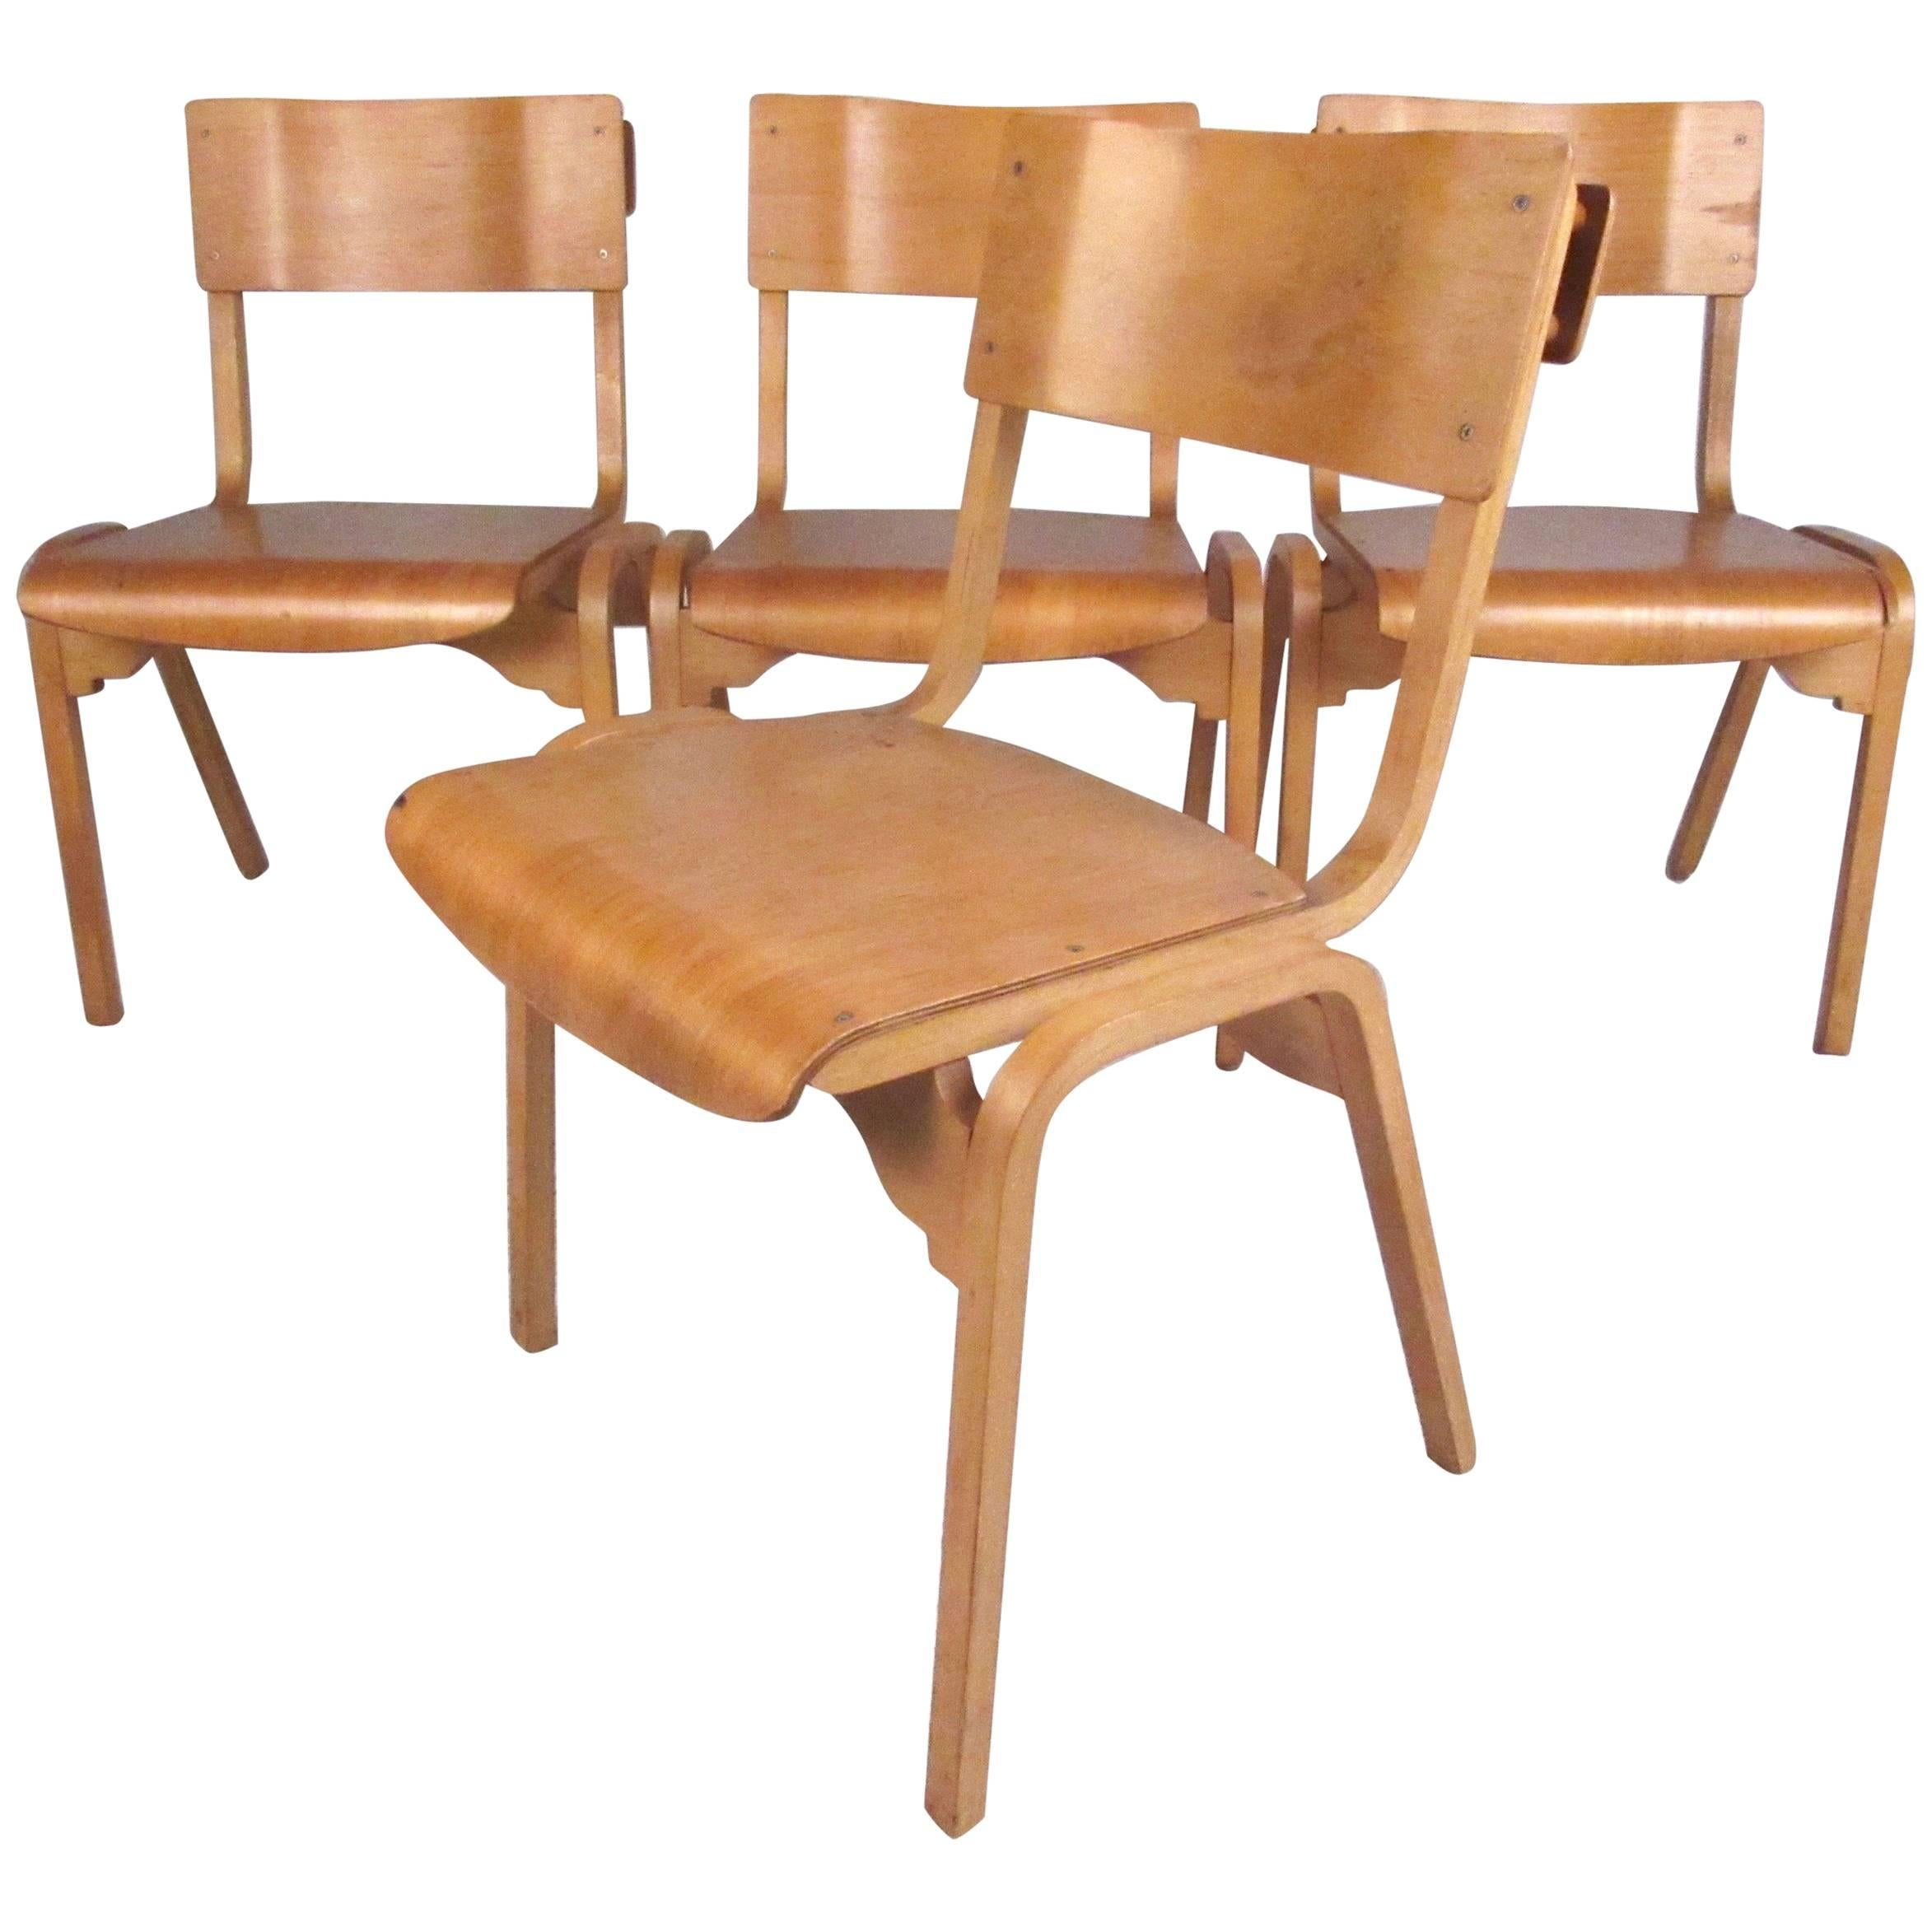 vintage bentwood chairs black padded folding chair at 1stdibs set of modern student